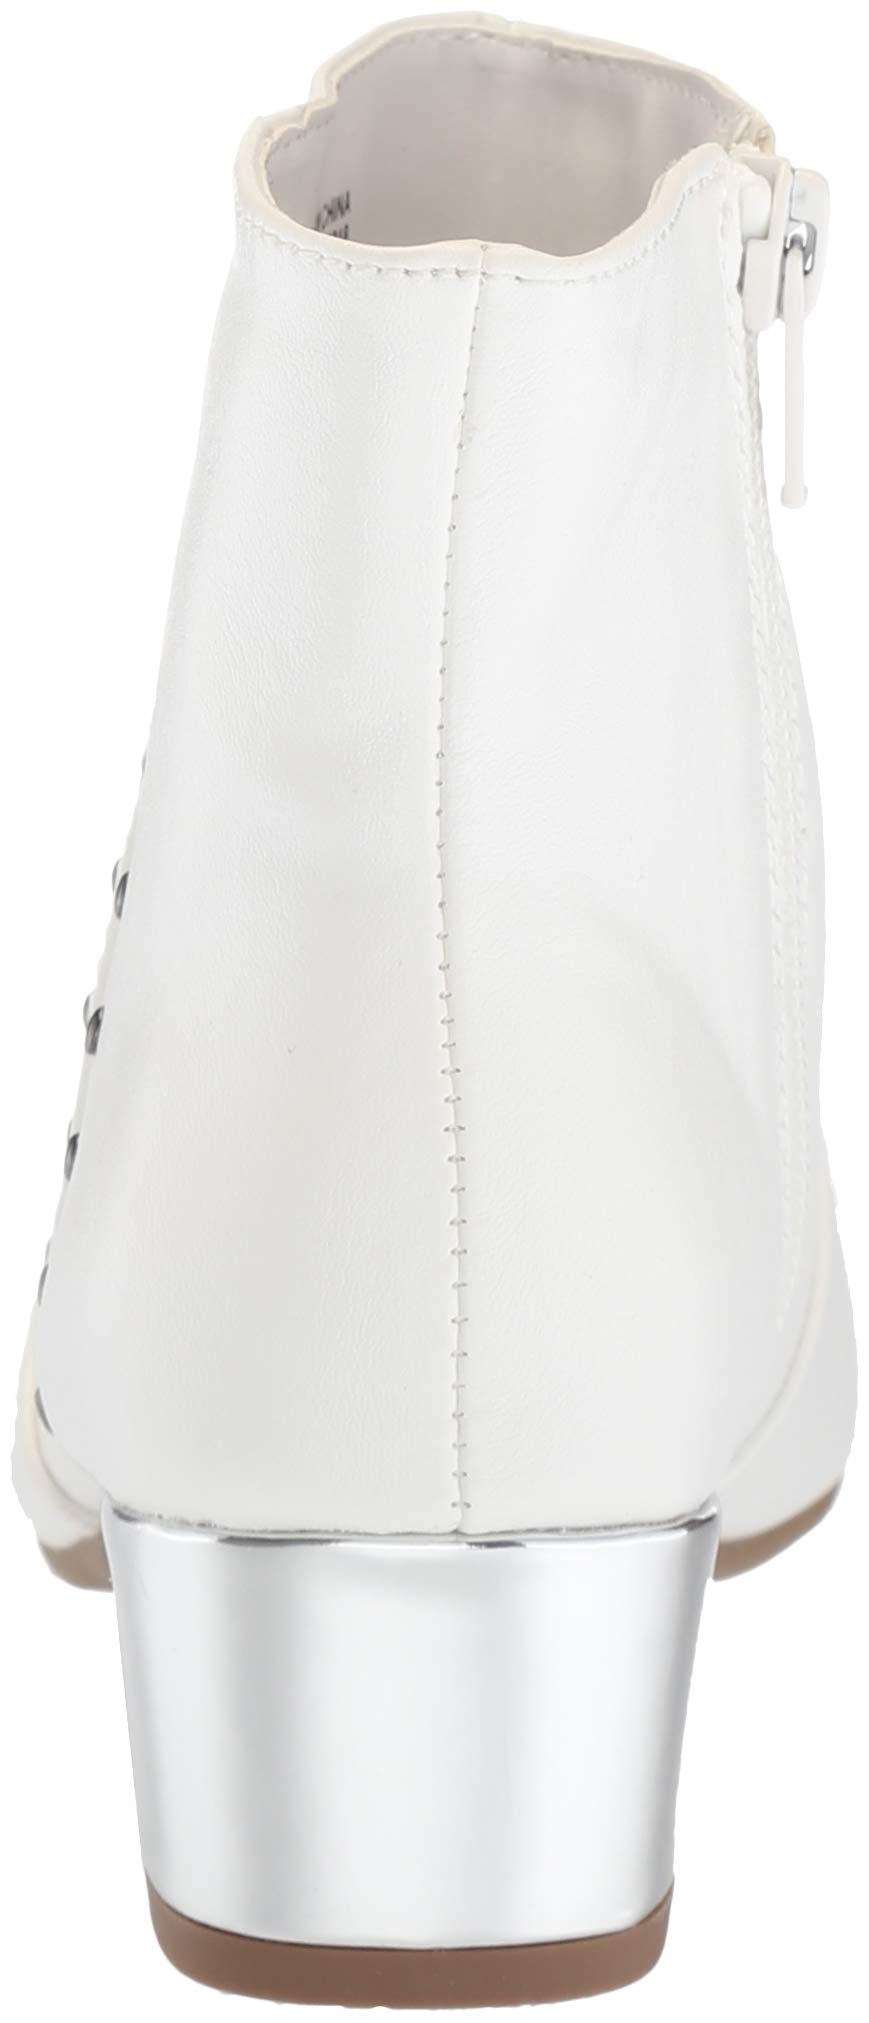 The Children's Place Girls' Bootie Fashion Boot, White, Youth 3 Child US Little Kid by The Children's Place (Image #2)